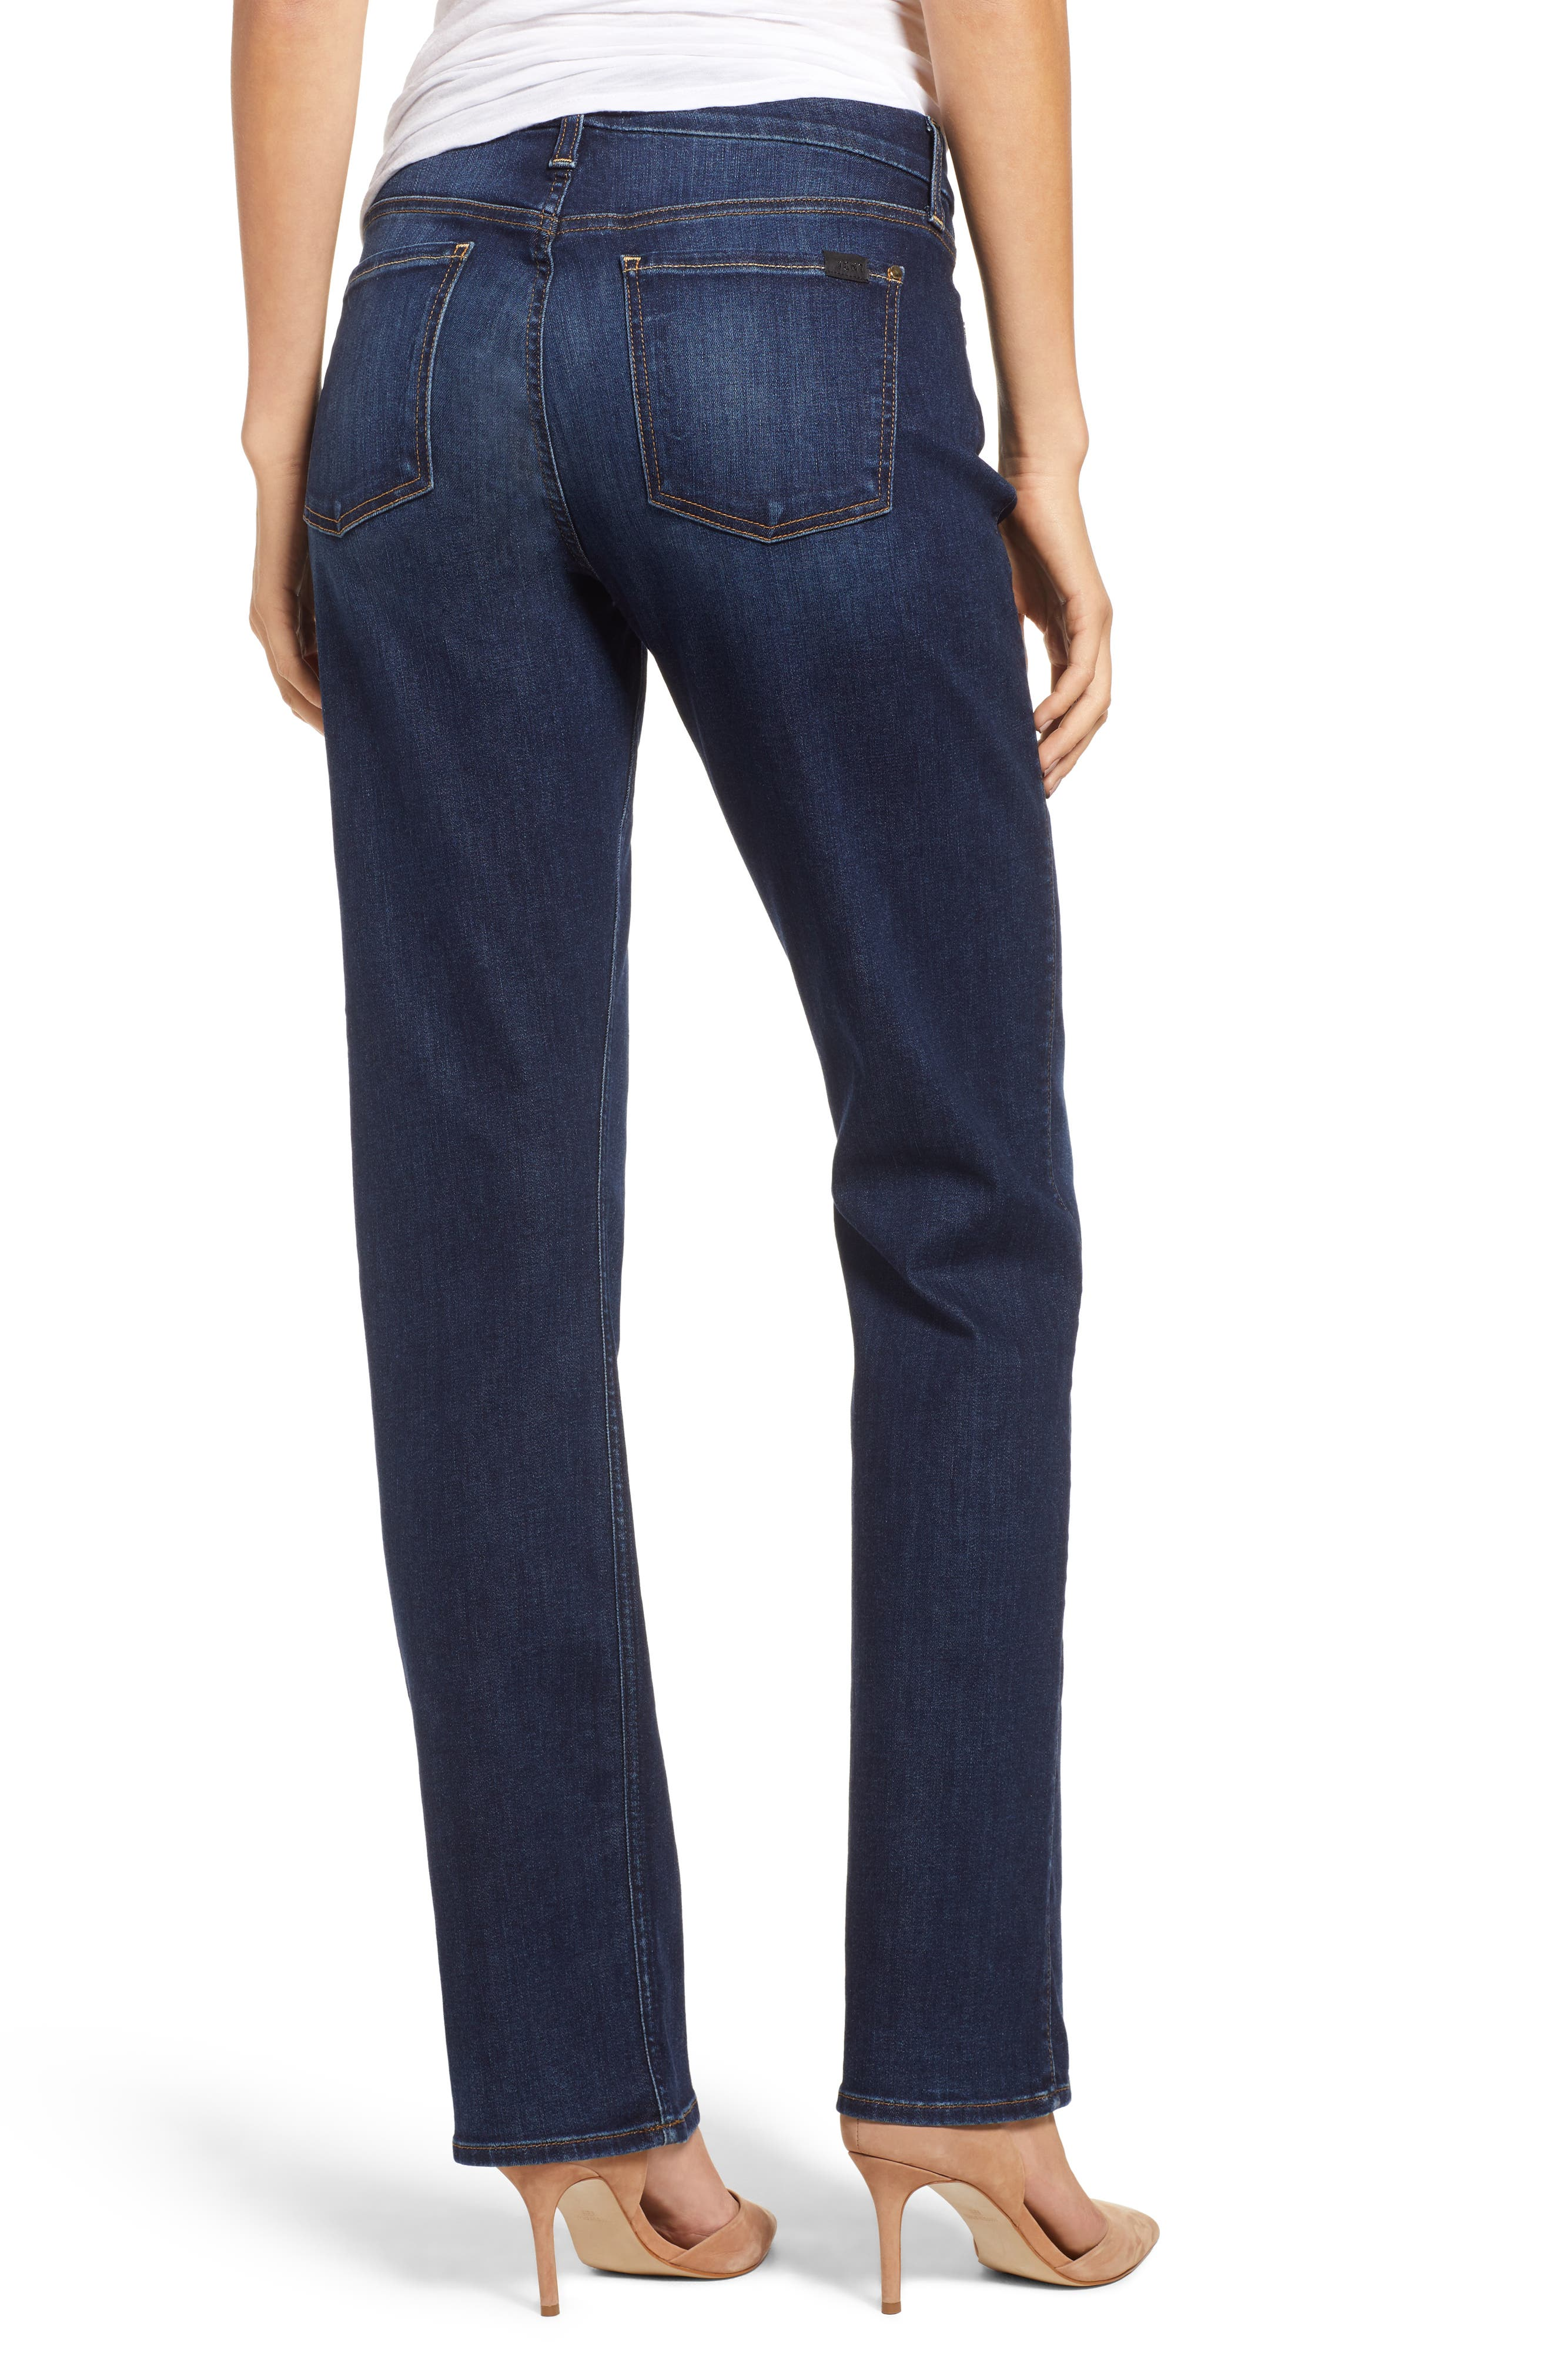 JEN7 BY 7 FOR ALL MANKIND, Stretch Slim Straight Leg Jeans, Alternate thumbnail 2, color, 400